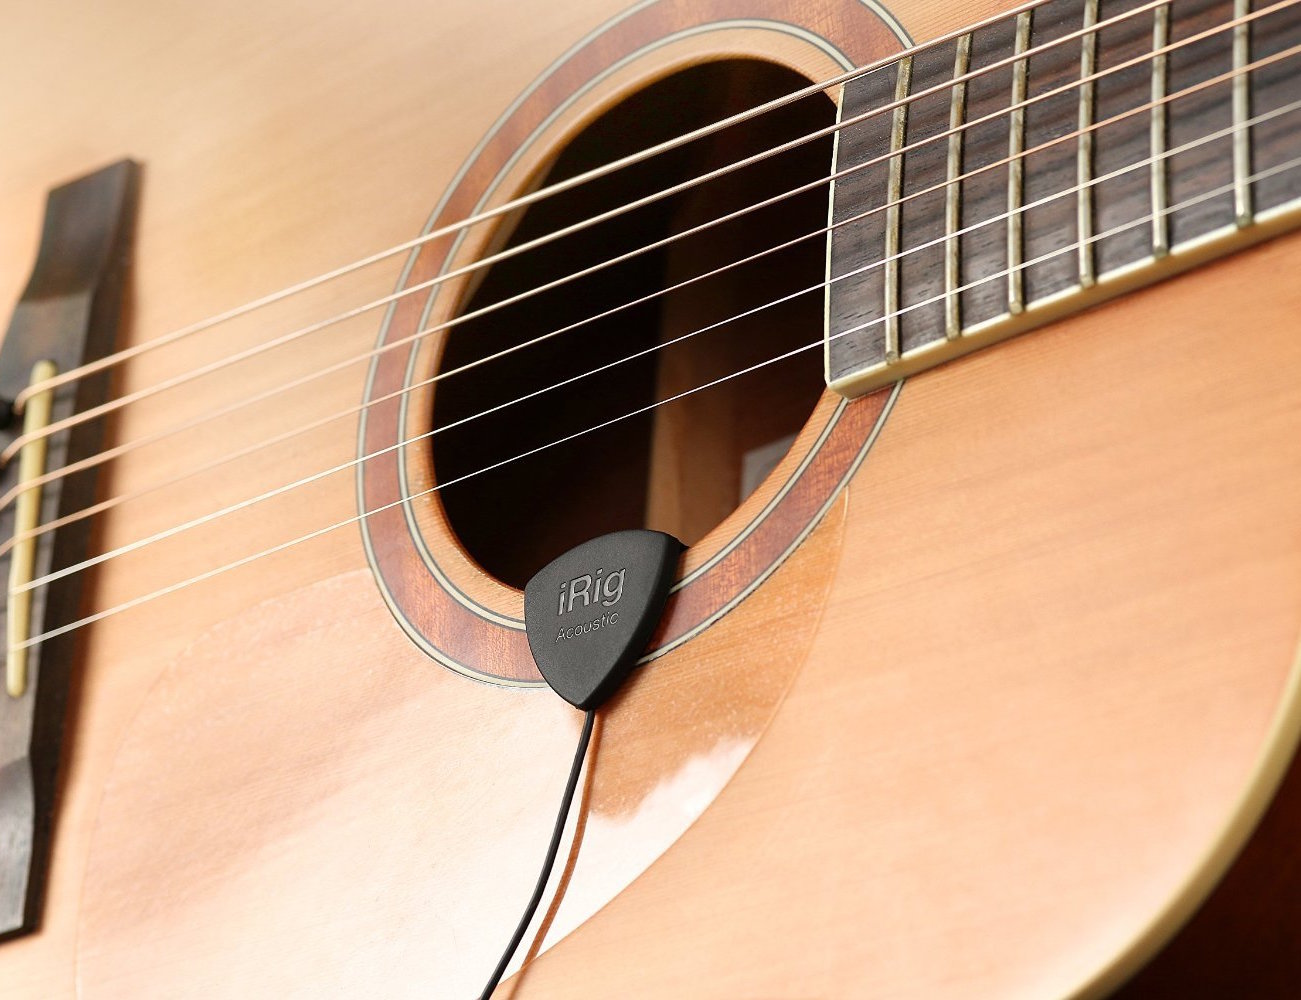 IRig+Acoustic+Guitar+Microphone